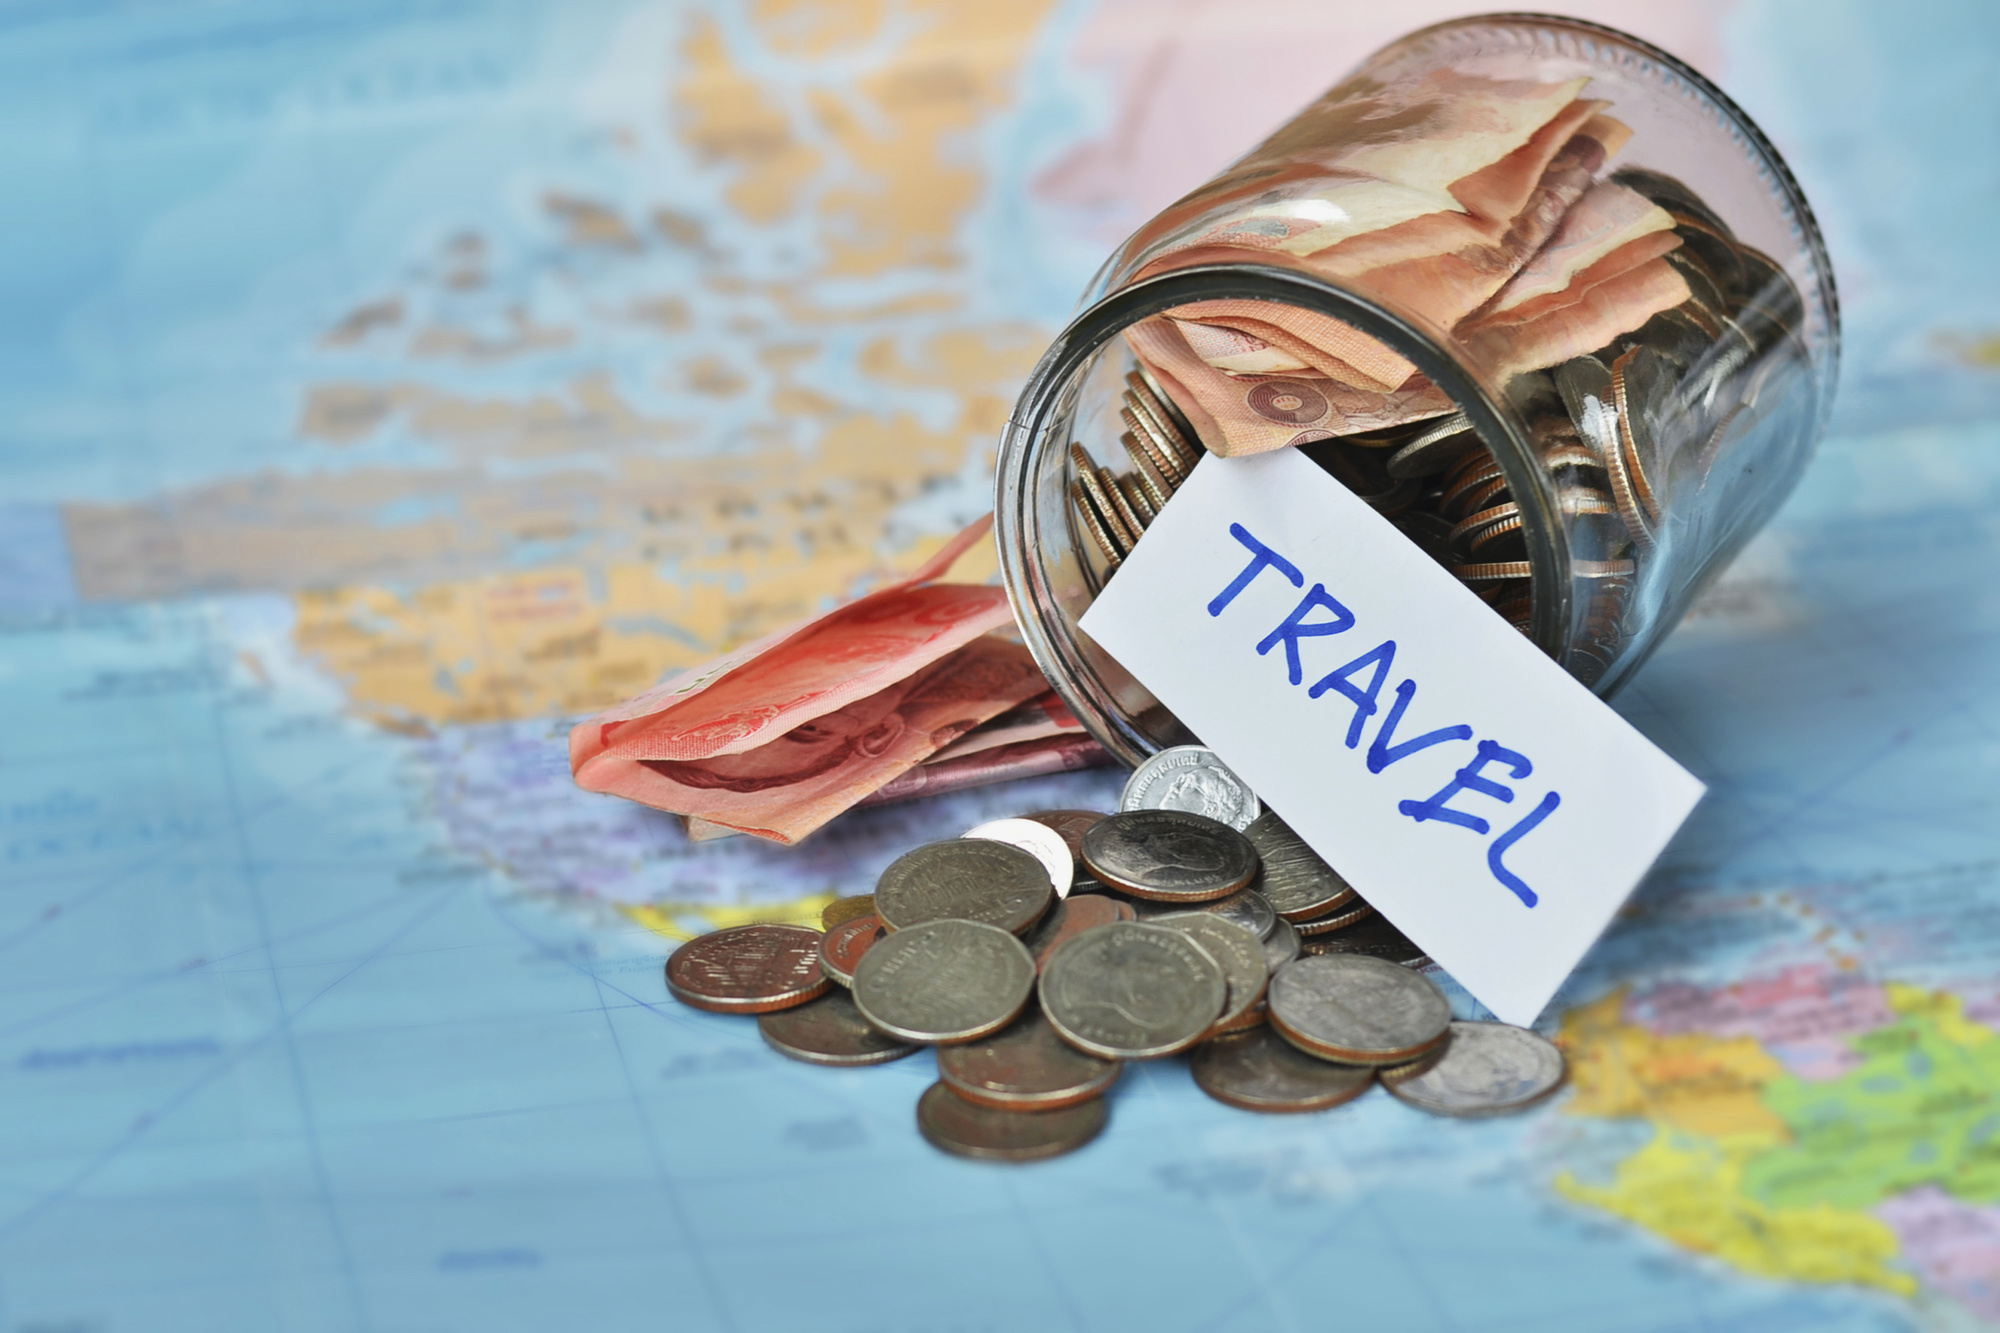 Here's 5 Tips on How to Travel on a Budget If You're Low on Funds